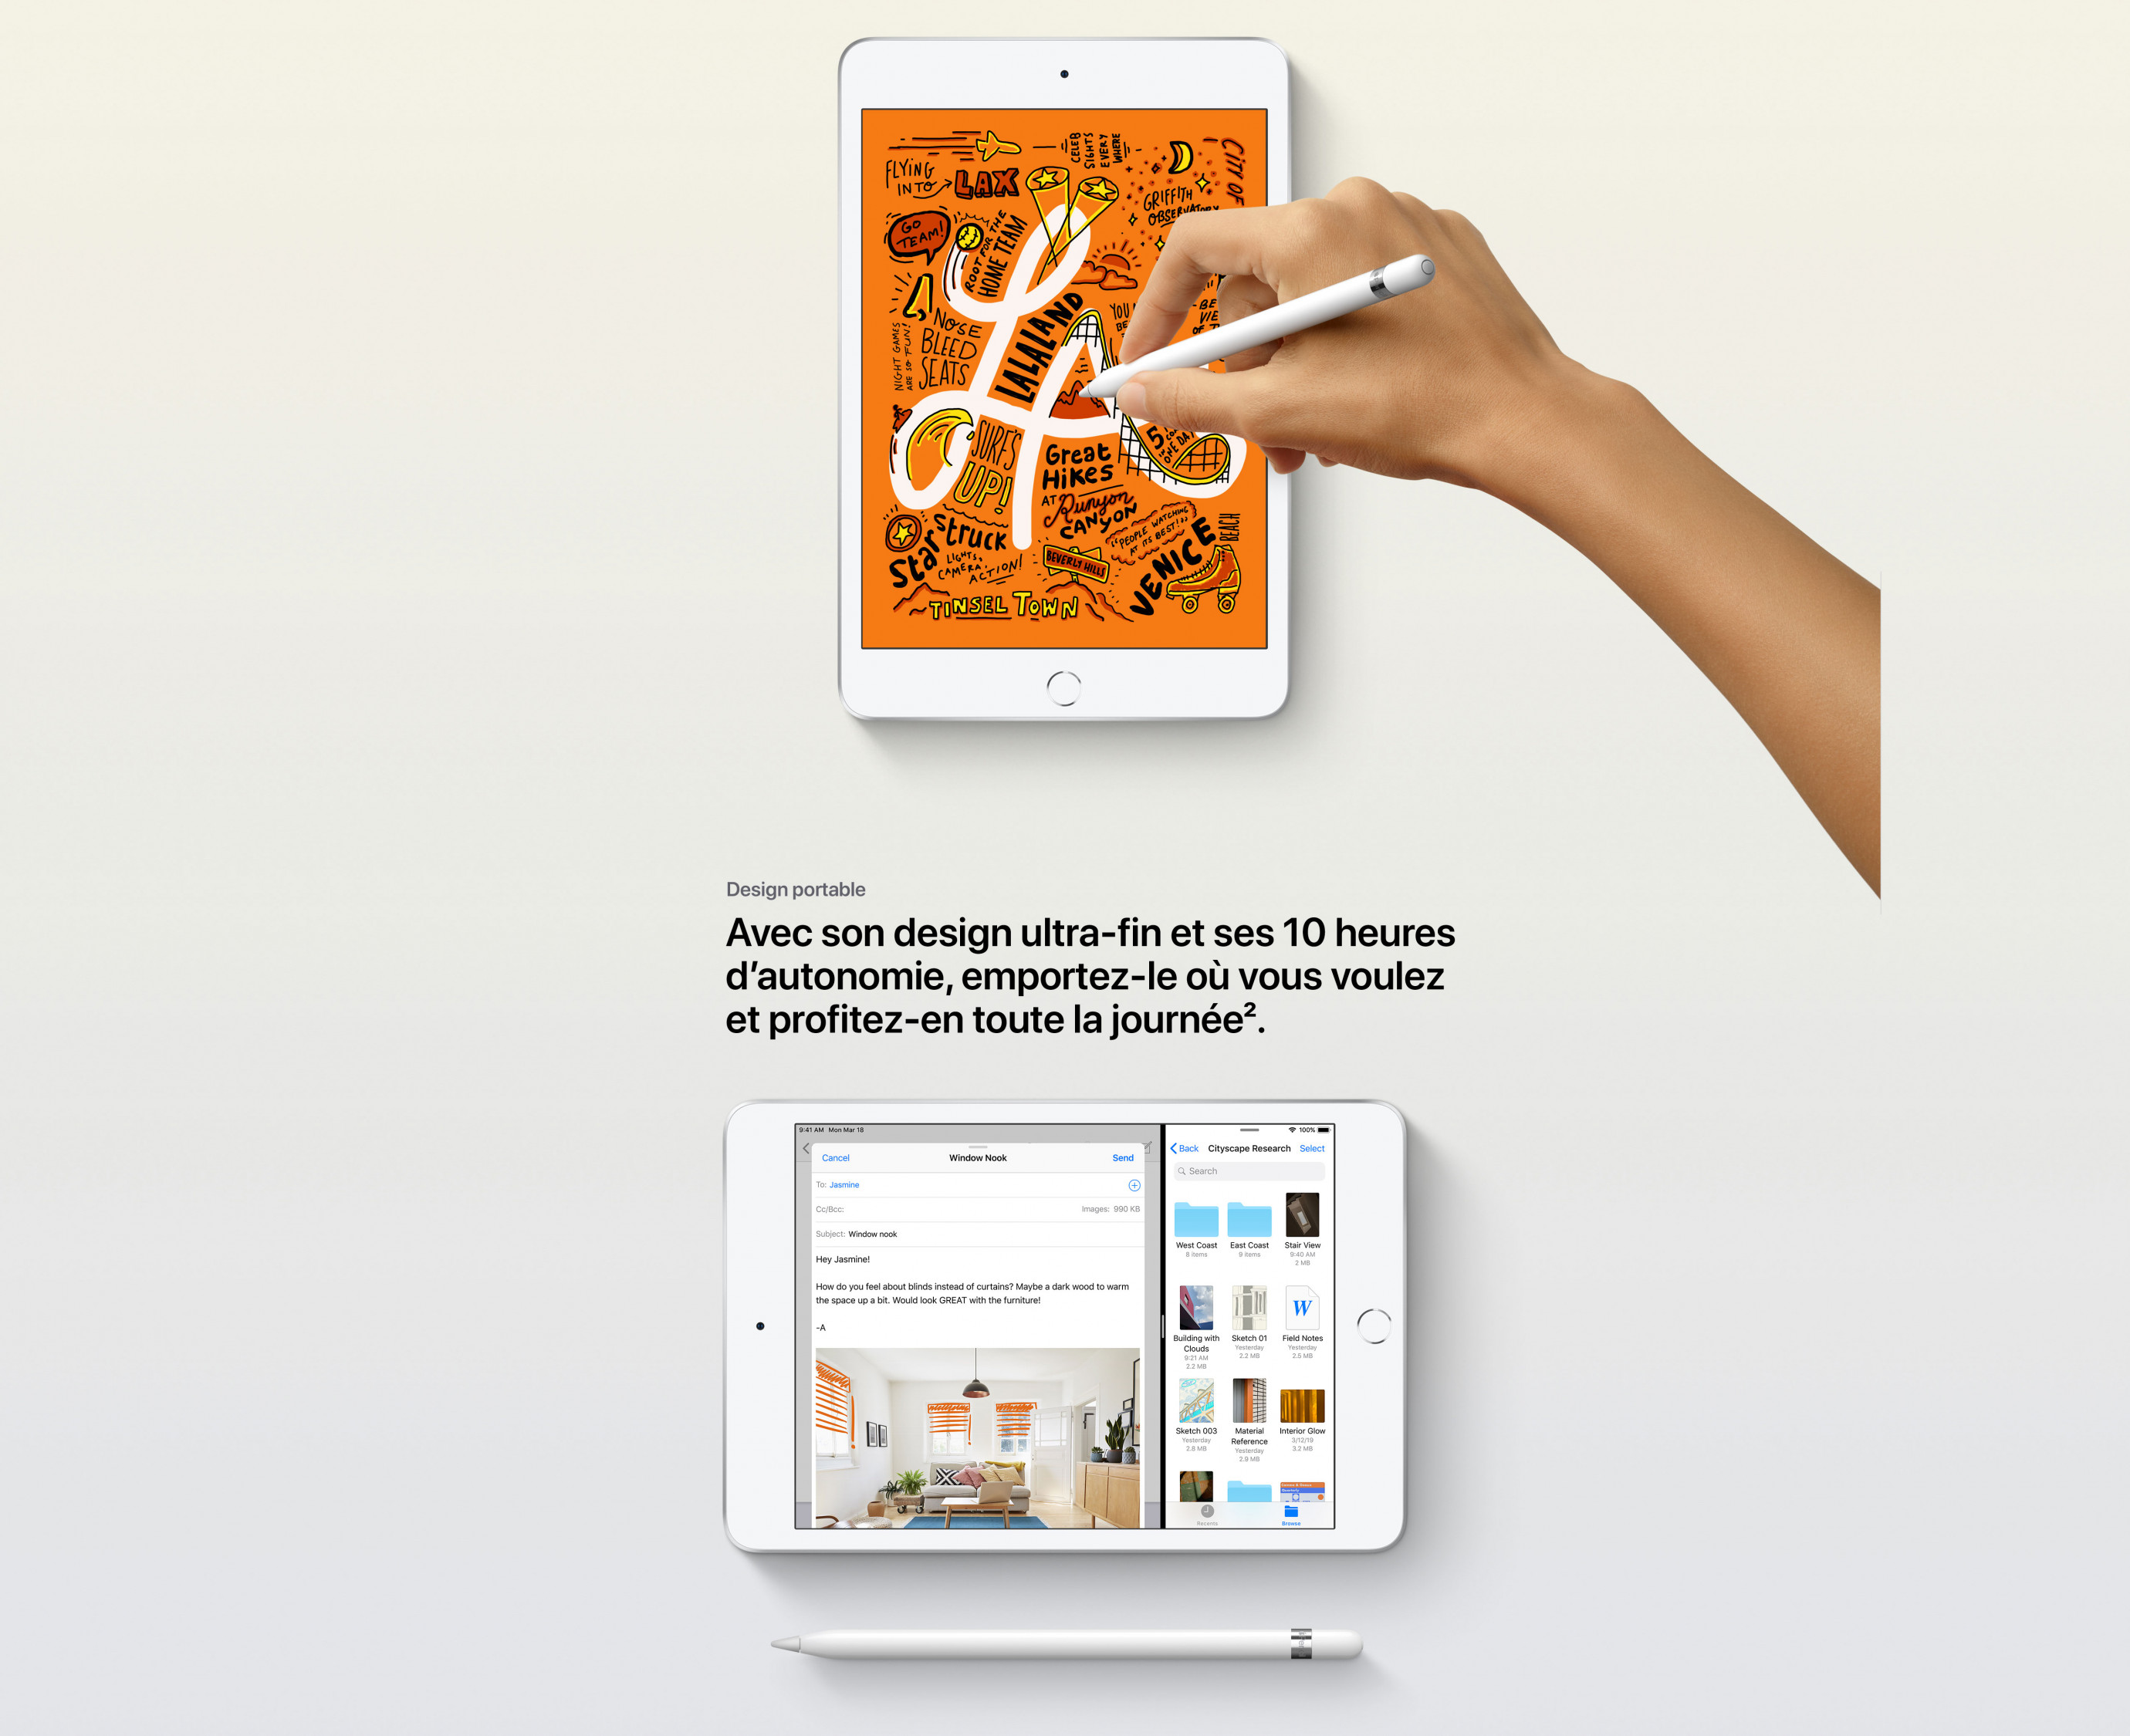 Productpage---iPad-Mini-2019-fr_05.jpg